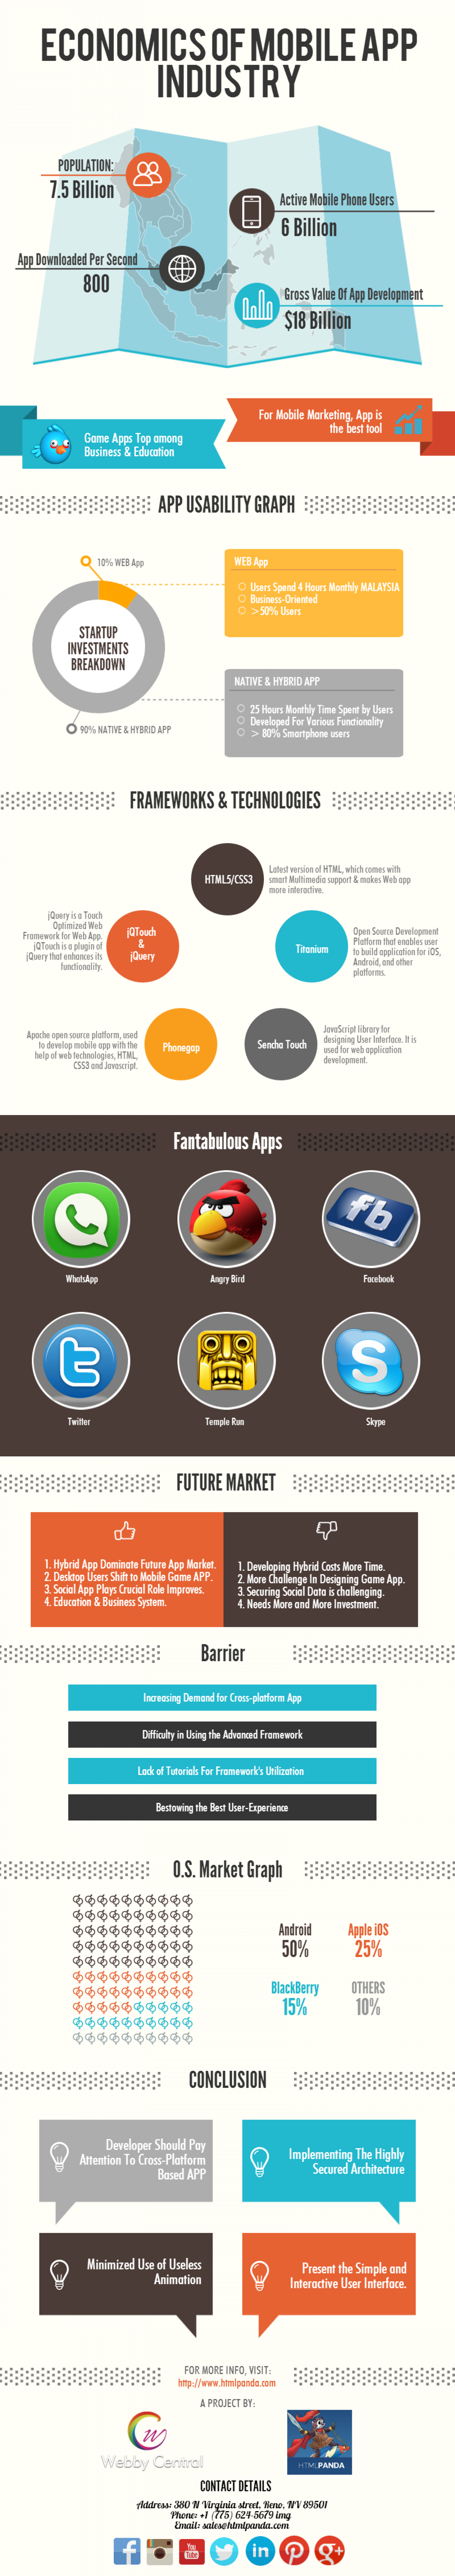 Economics of Mobile App Industry Infographic